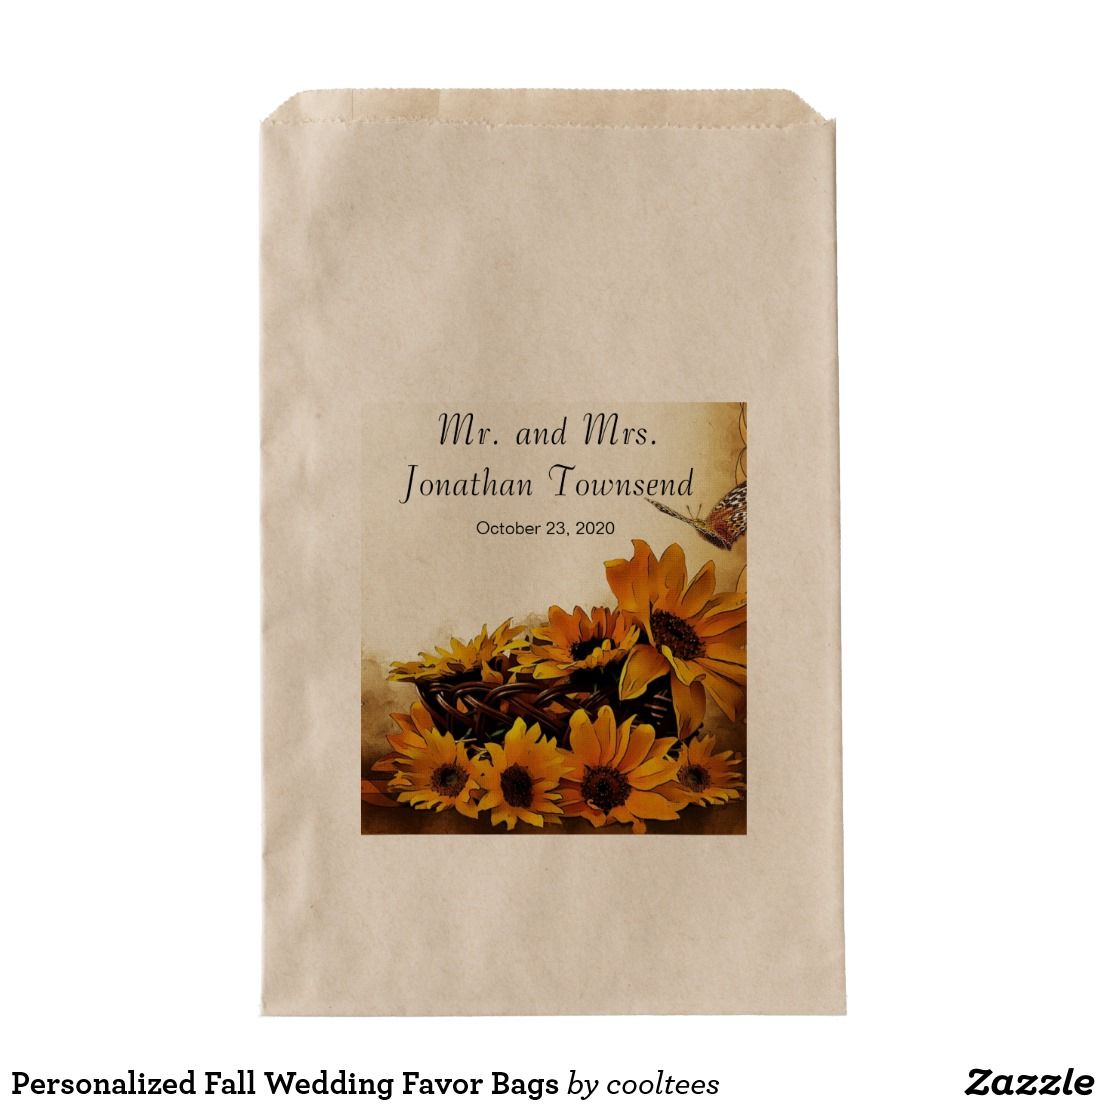 Personalized Fall Wedding Favor Bags | Wedding favor bags, Favor ...